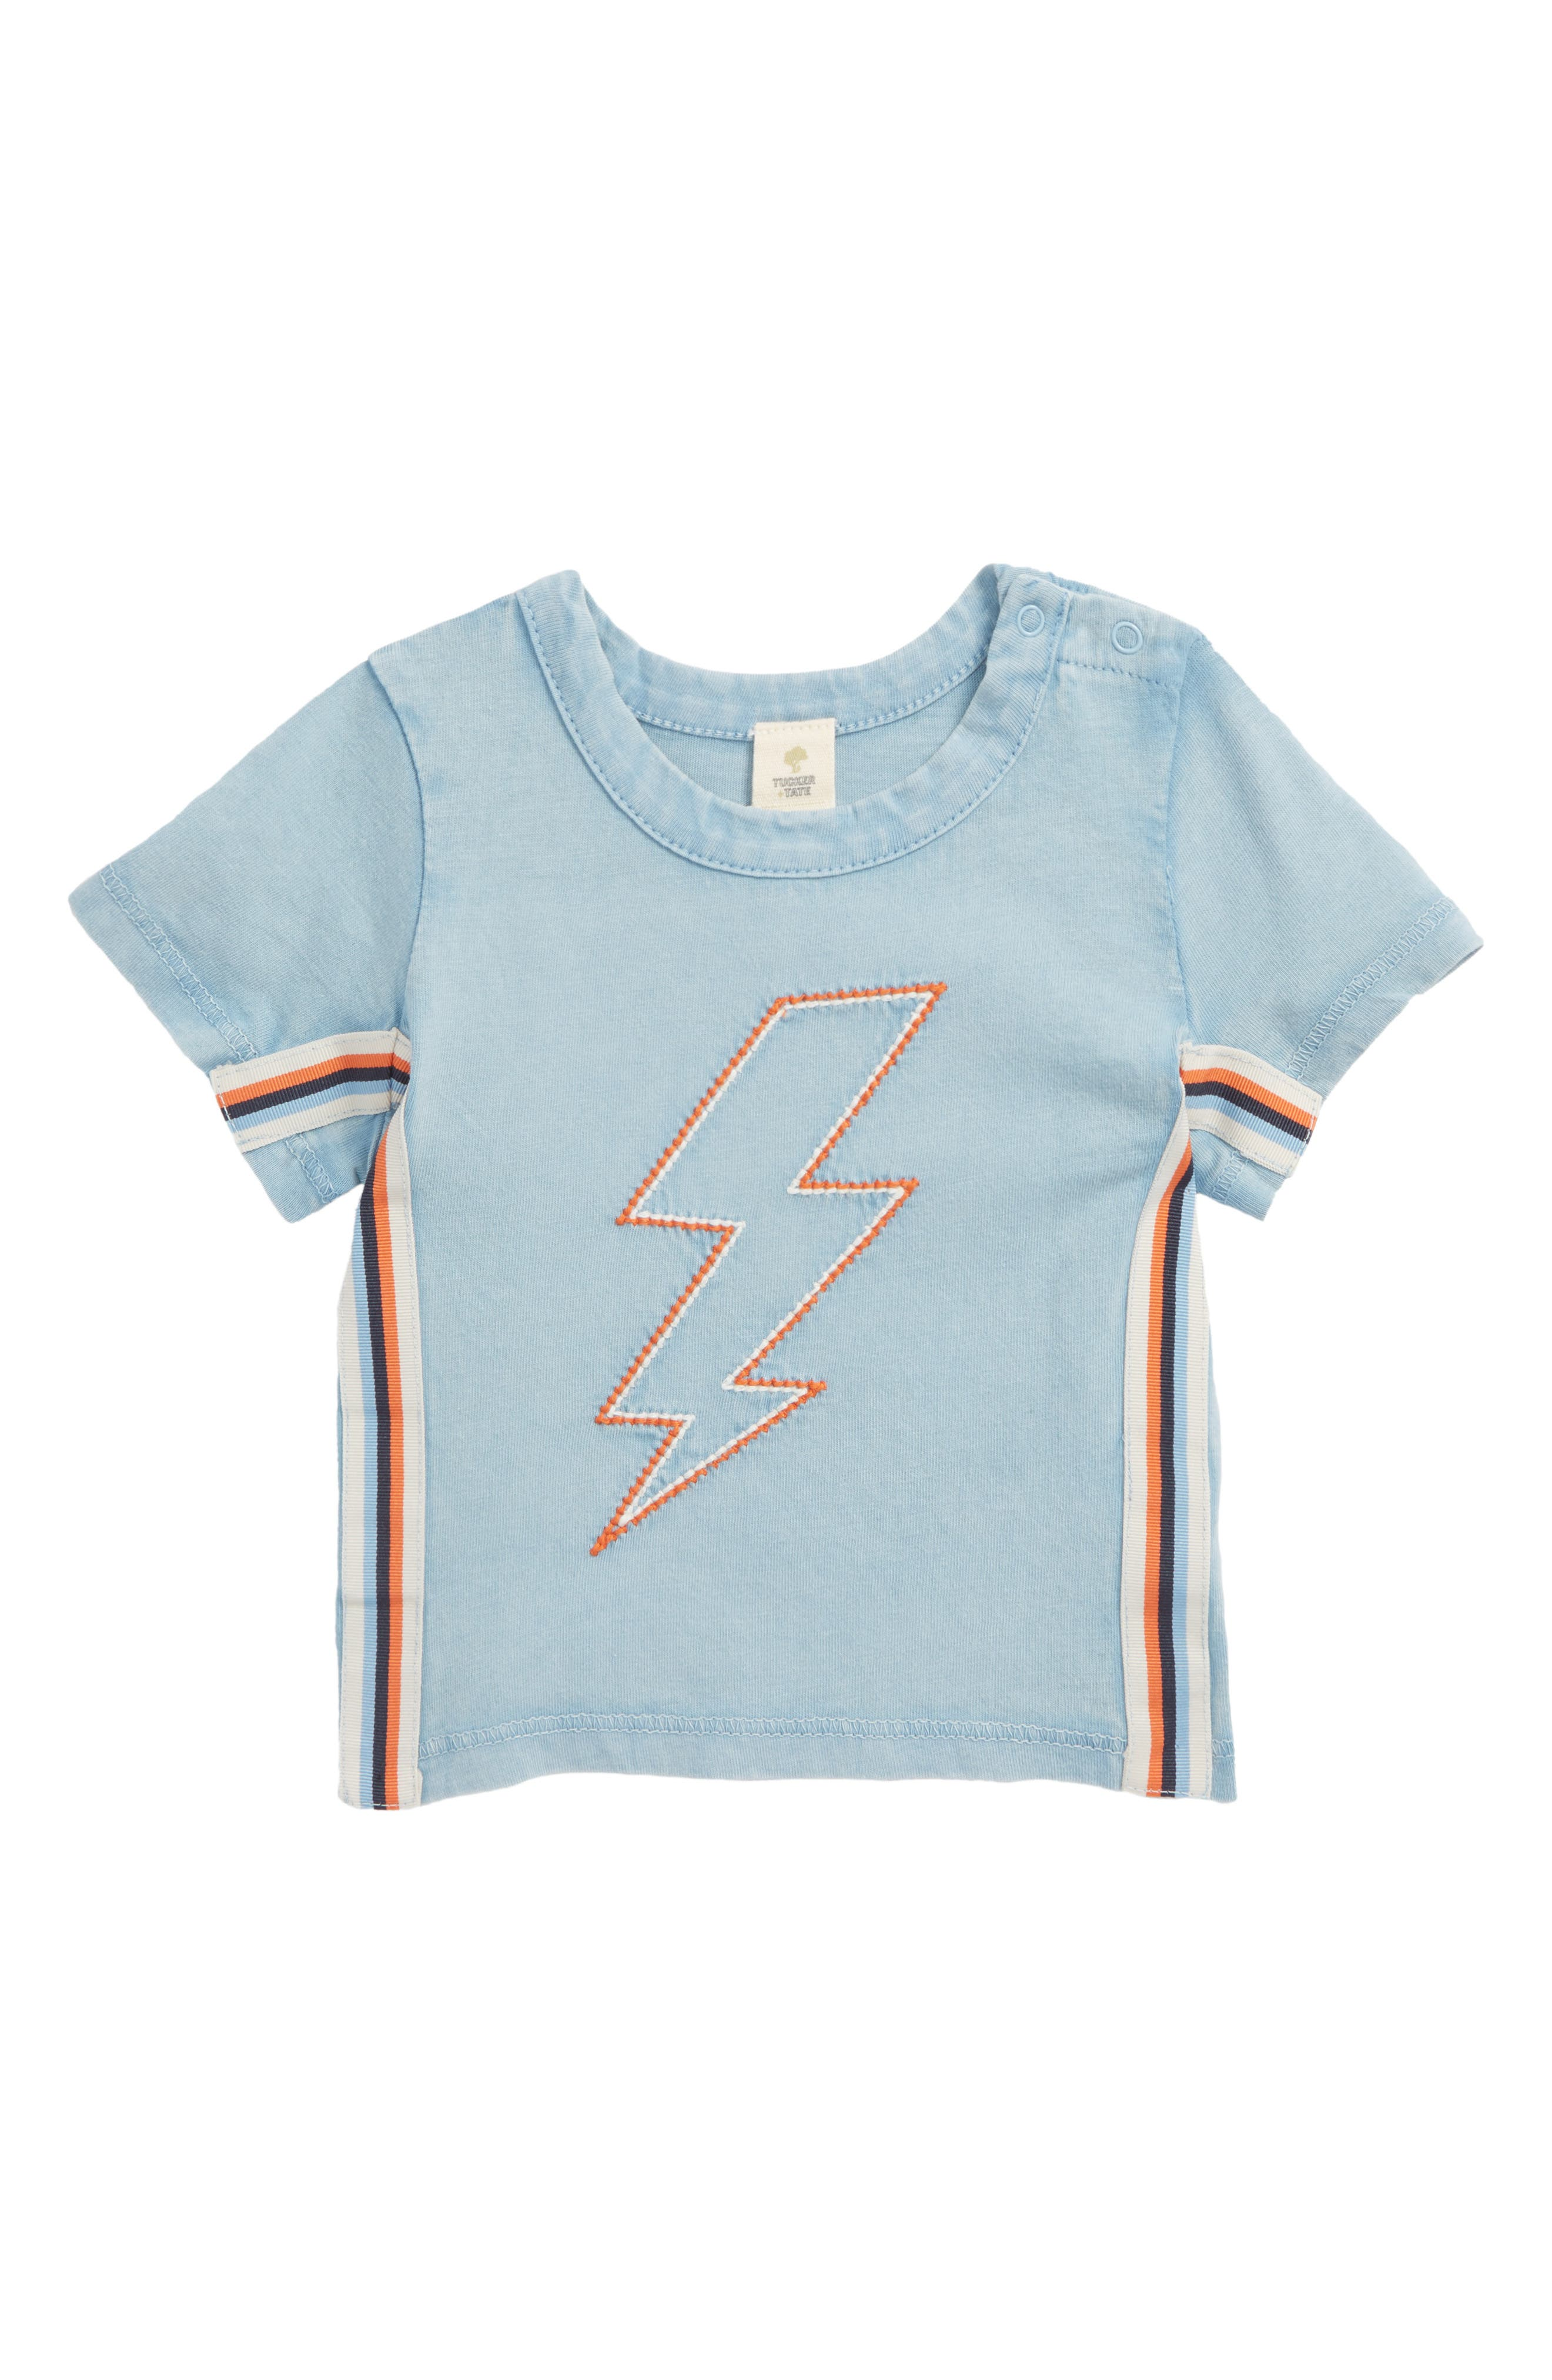 Embroidered T-Shirt,                             Main thumbnail 1, color,                             Blue Chambray